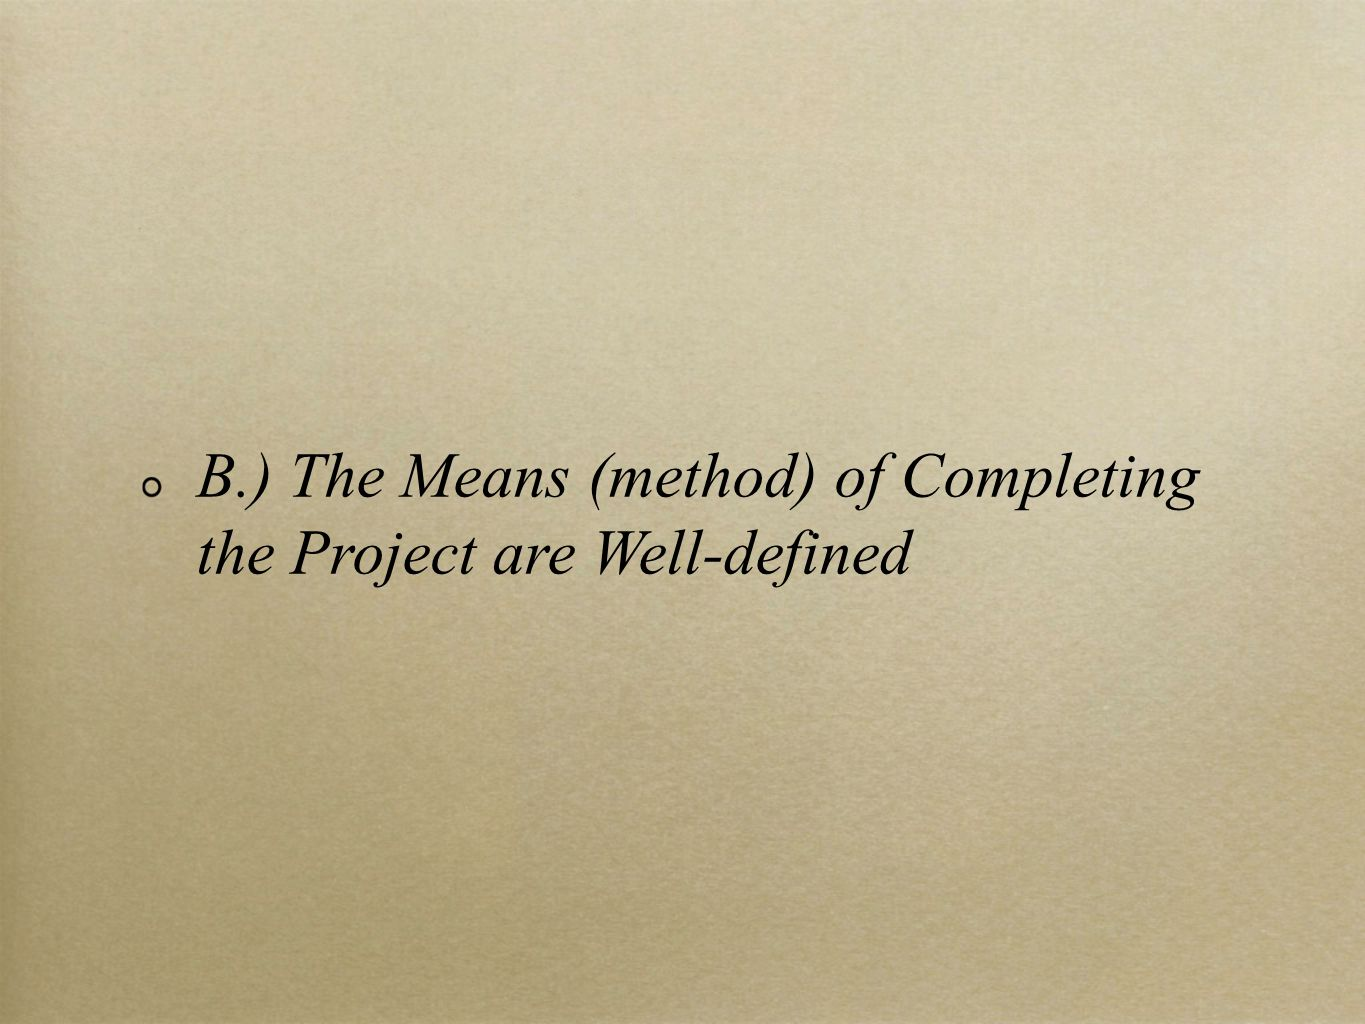 B.) The Means (method) of Completing the Project are Well-defined